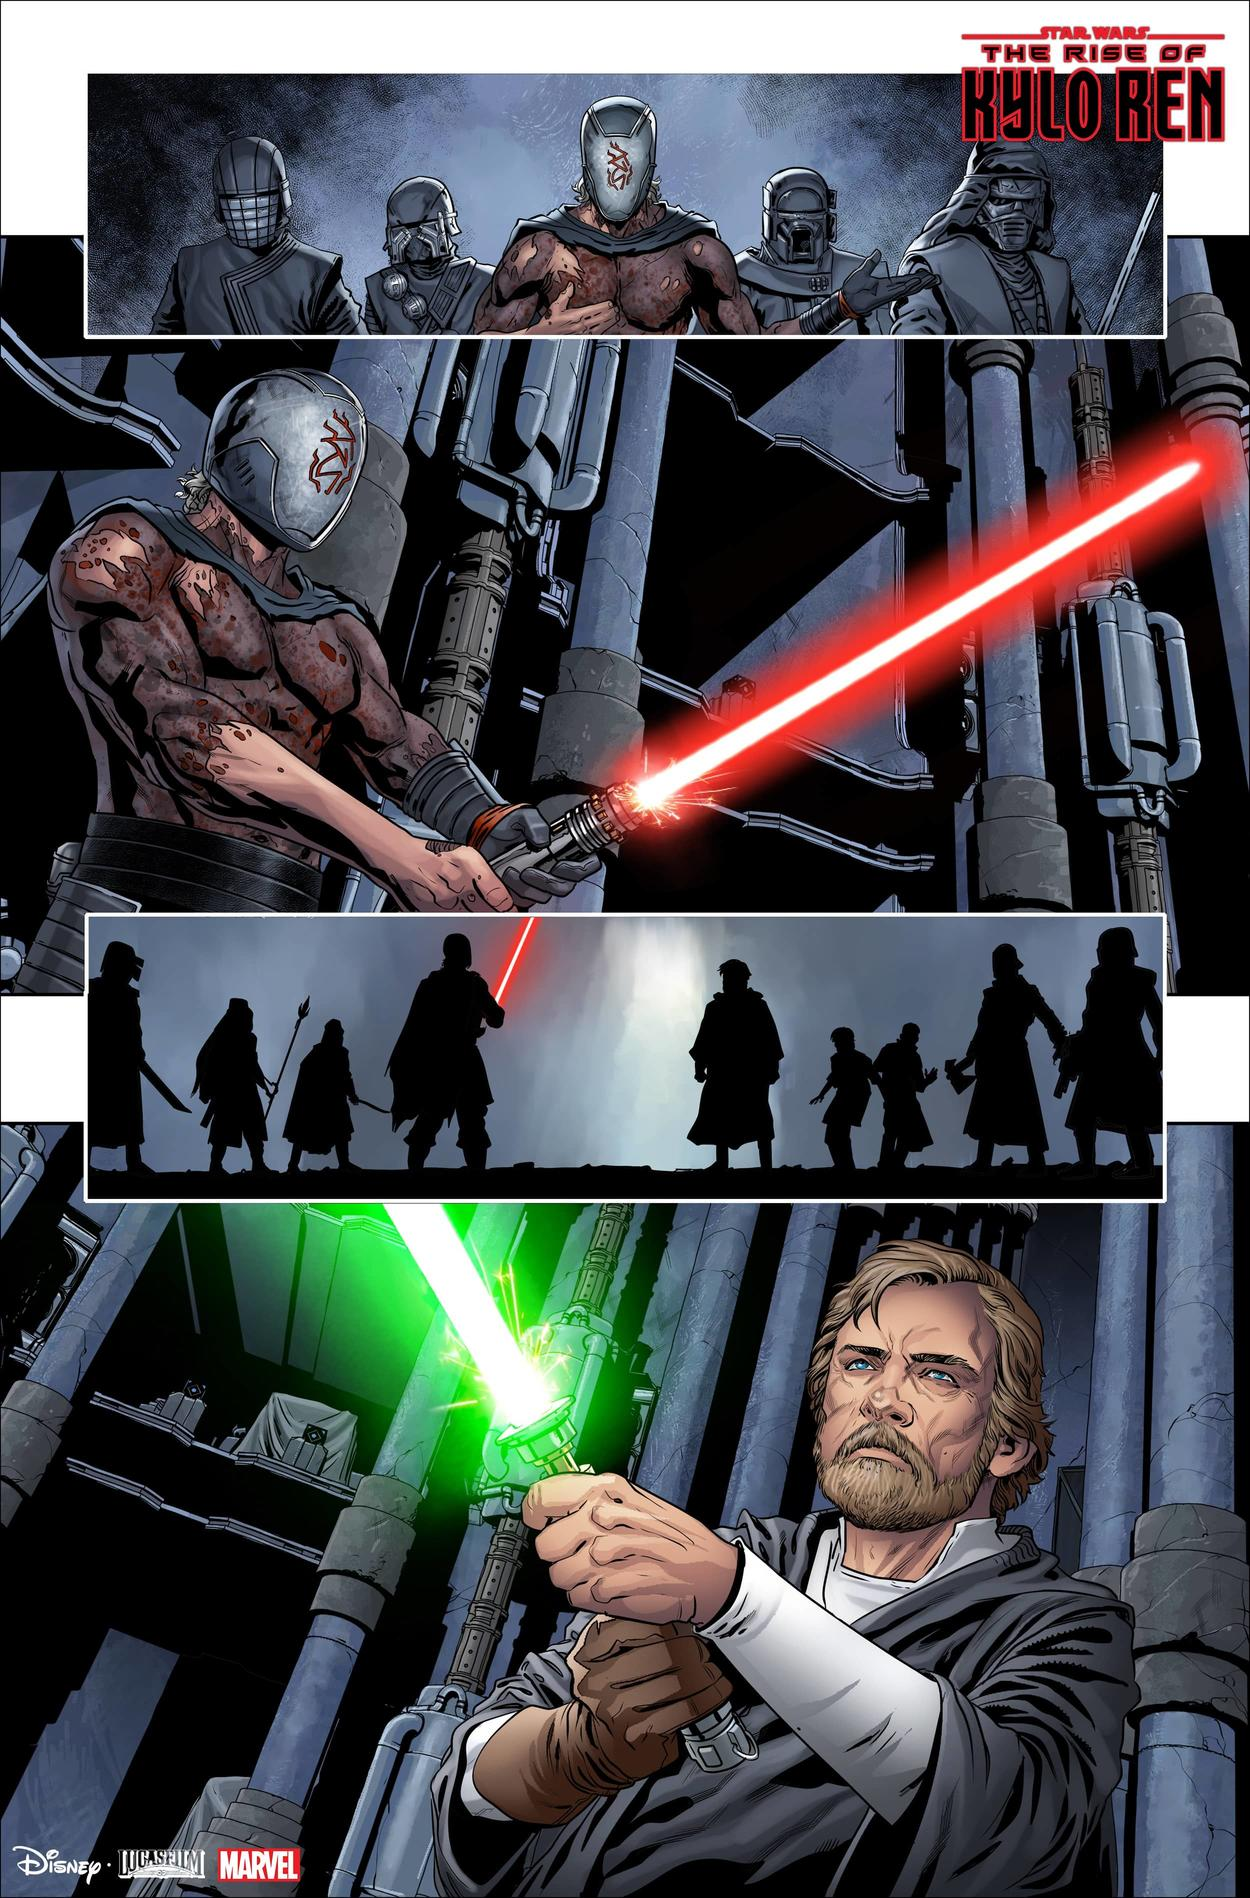 Luke Skywalker stands off against the leader of the Knights of Ren